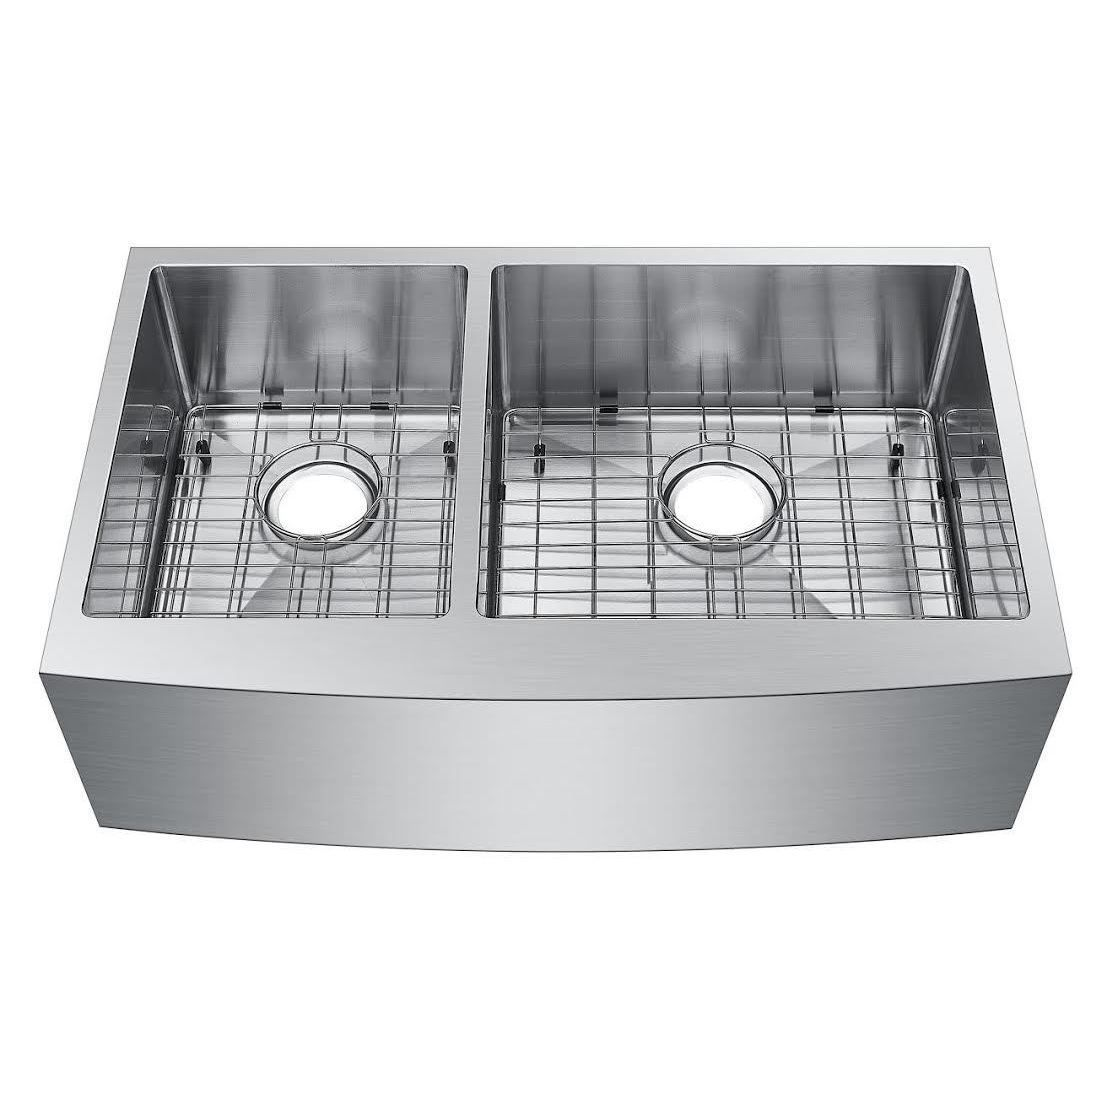 starstar stainless steel 33 inch 40 60 double bowl undermount apron kitchen sink starstar stainless steel 33 inch 40 60 double bowl undermount      rh   pinterest com